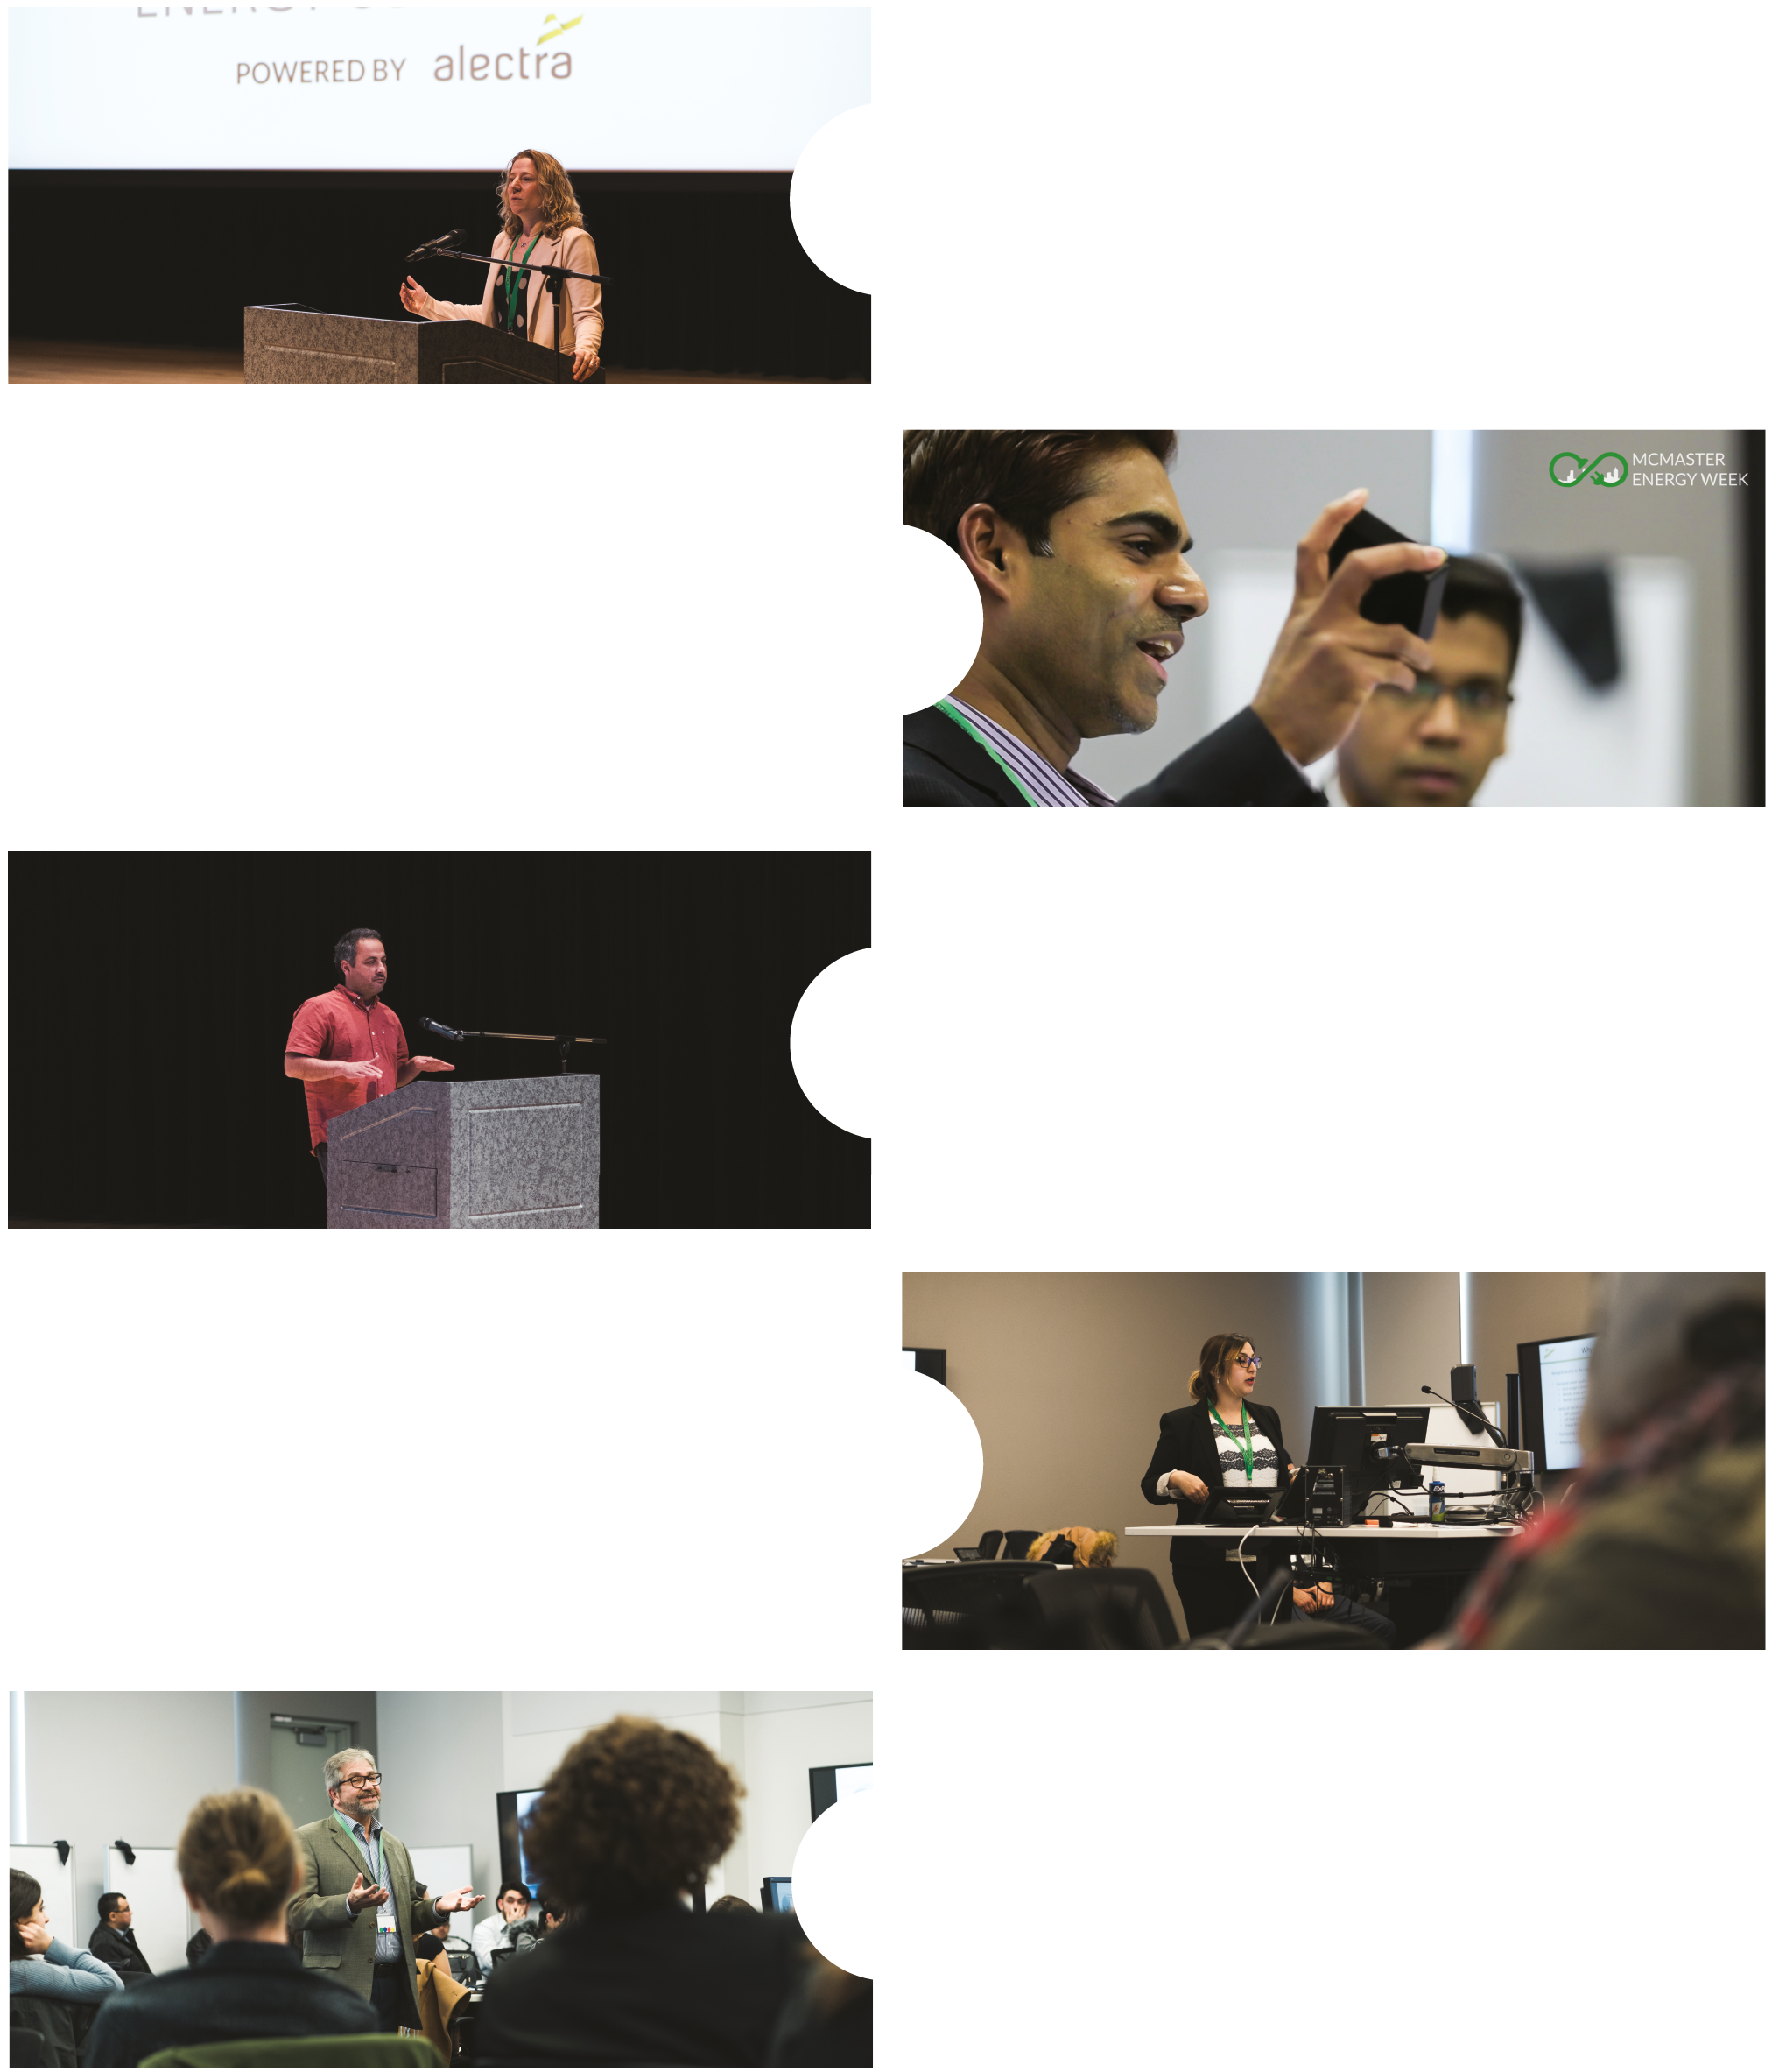 energy week mcmaster 2019 (2)_11.png